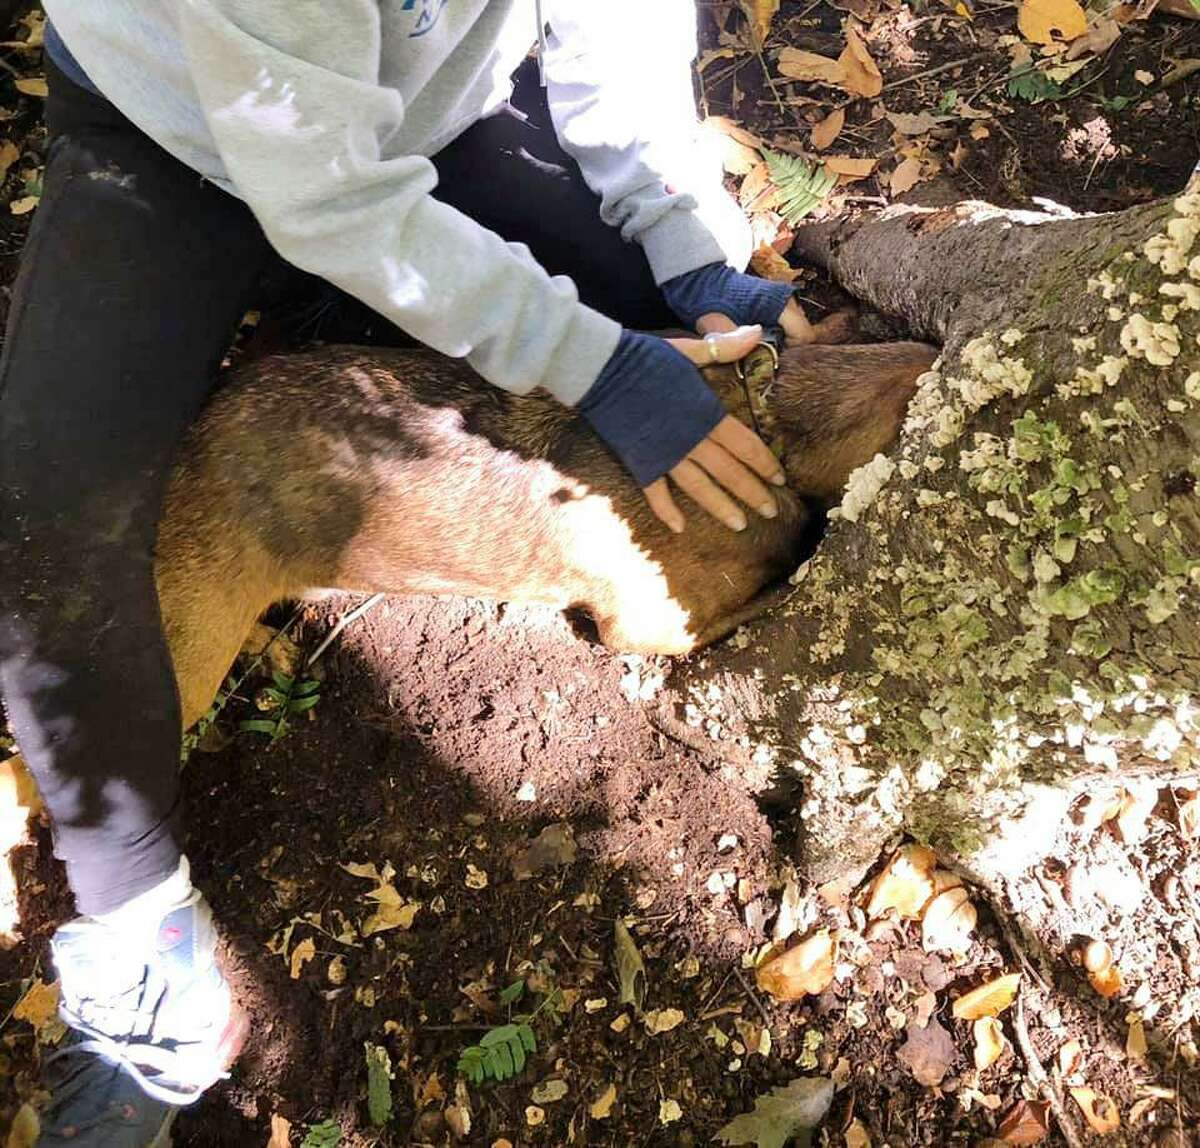 A dog got his head got stuck in the stump of a dead tree in Wilton.